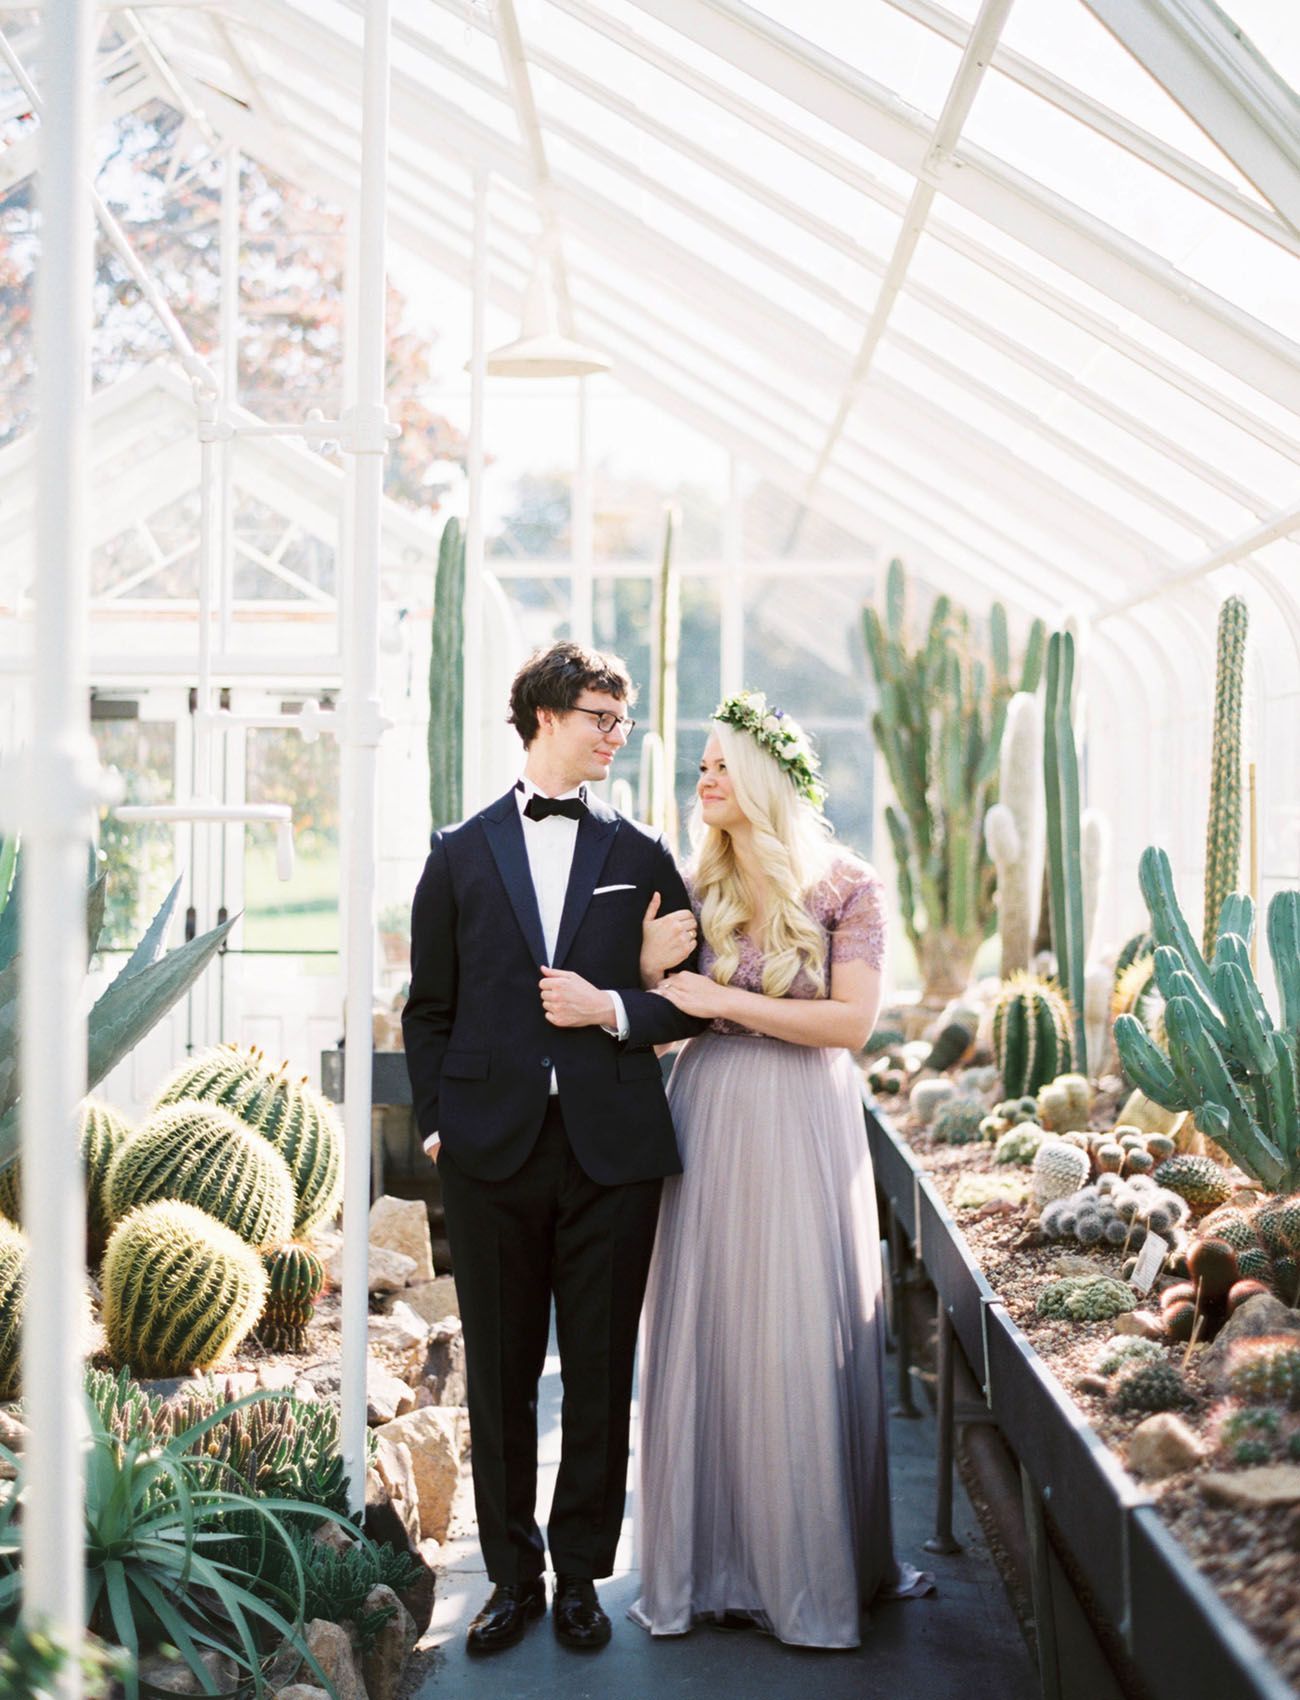 Intimate Seattle Greenhouse Wedding  Allie + Brian  28a0a120cd